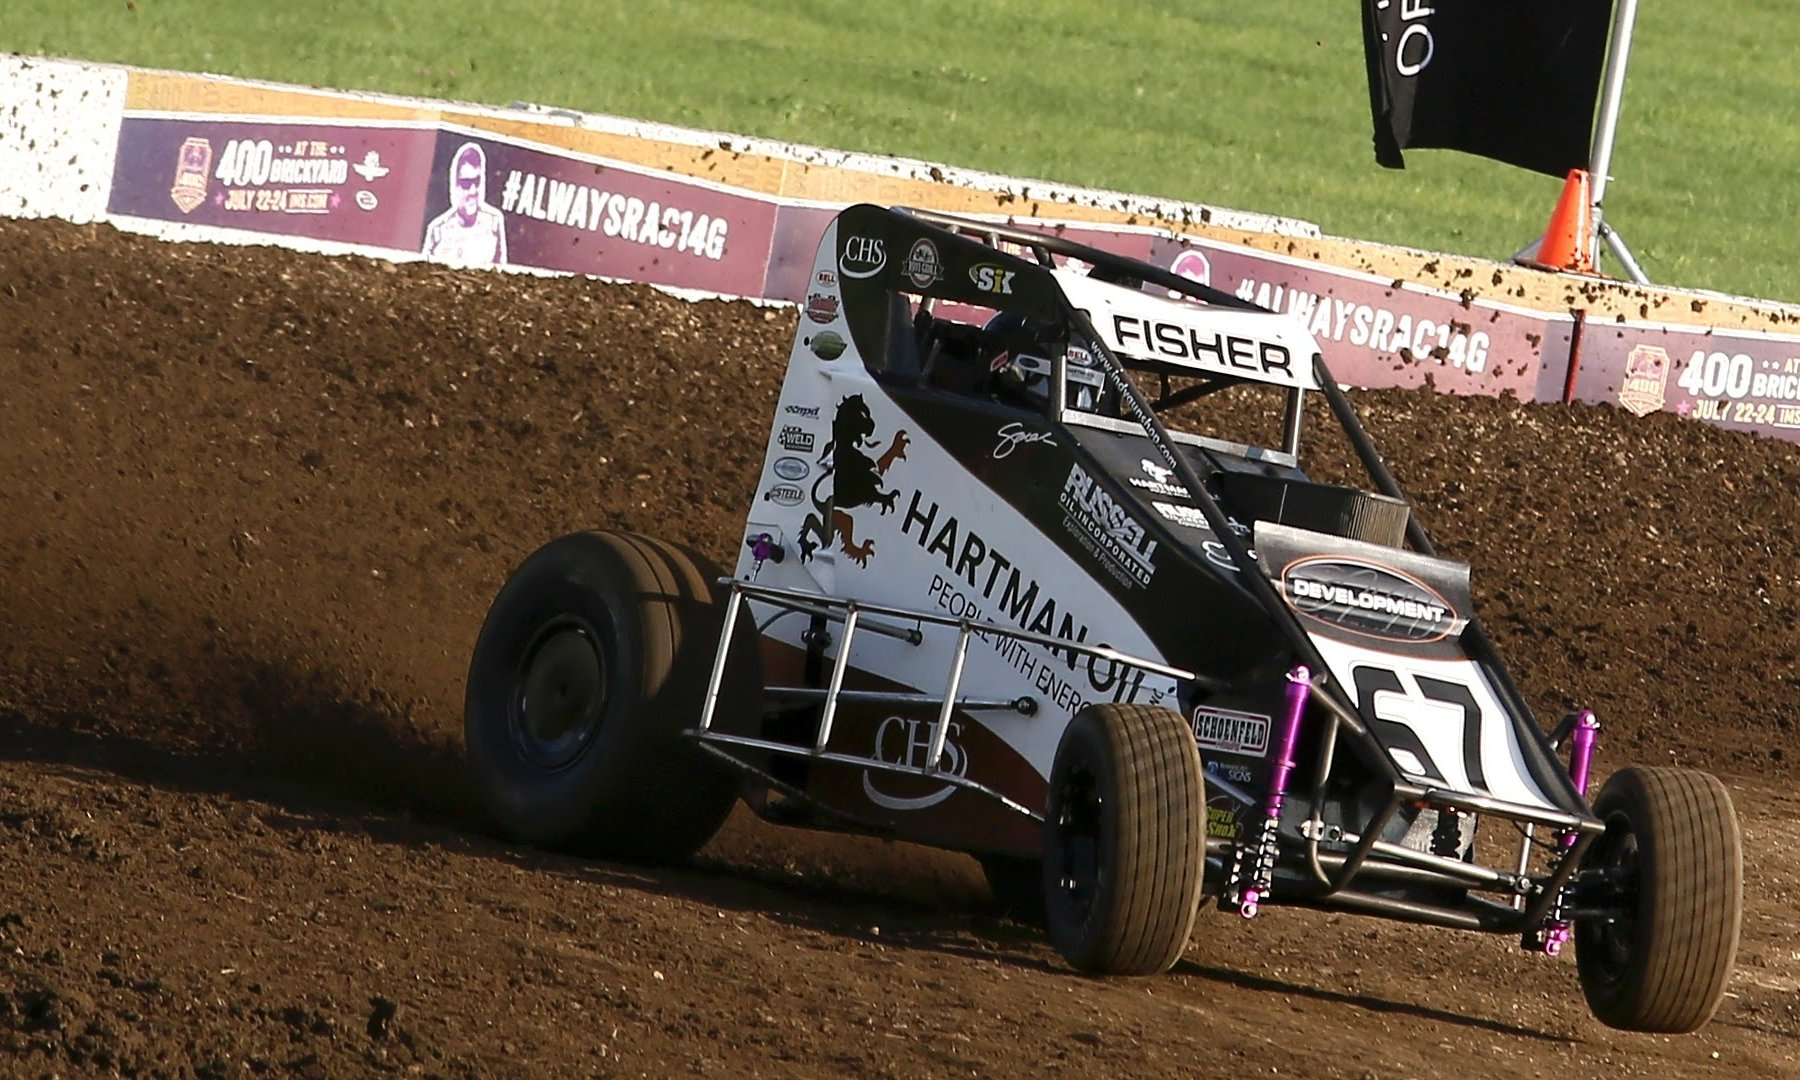 Indianapolis Motor Speedway dirt track - Sarah Fisher